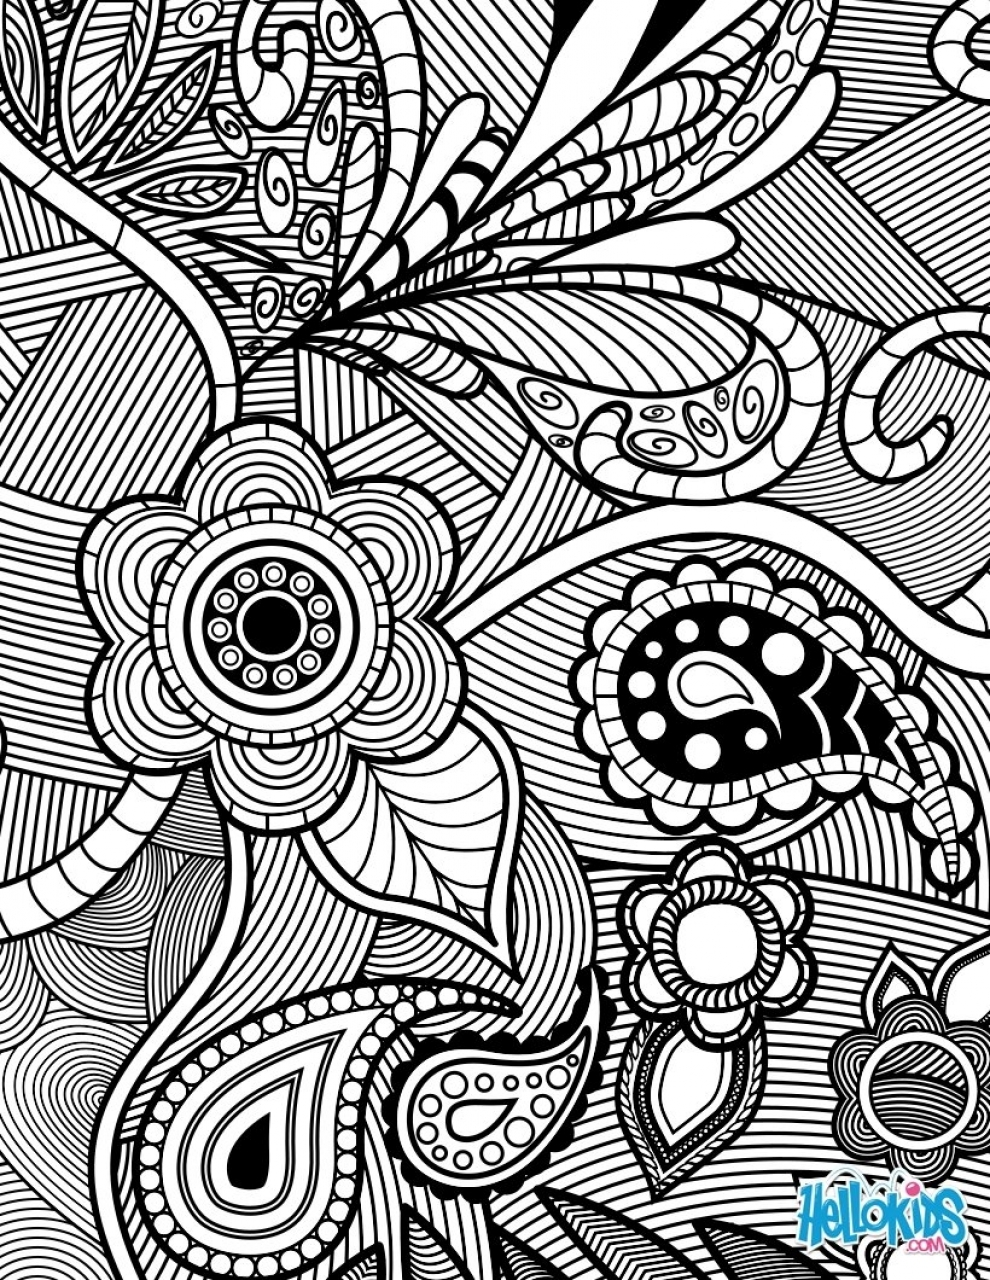 cool abstract coloring pages get this naruto chibi coloring pages 26173 cool abstract coloring pages